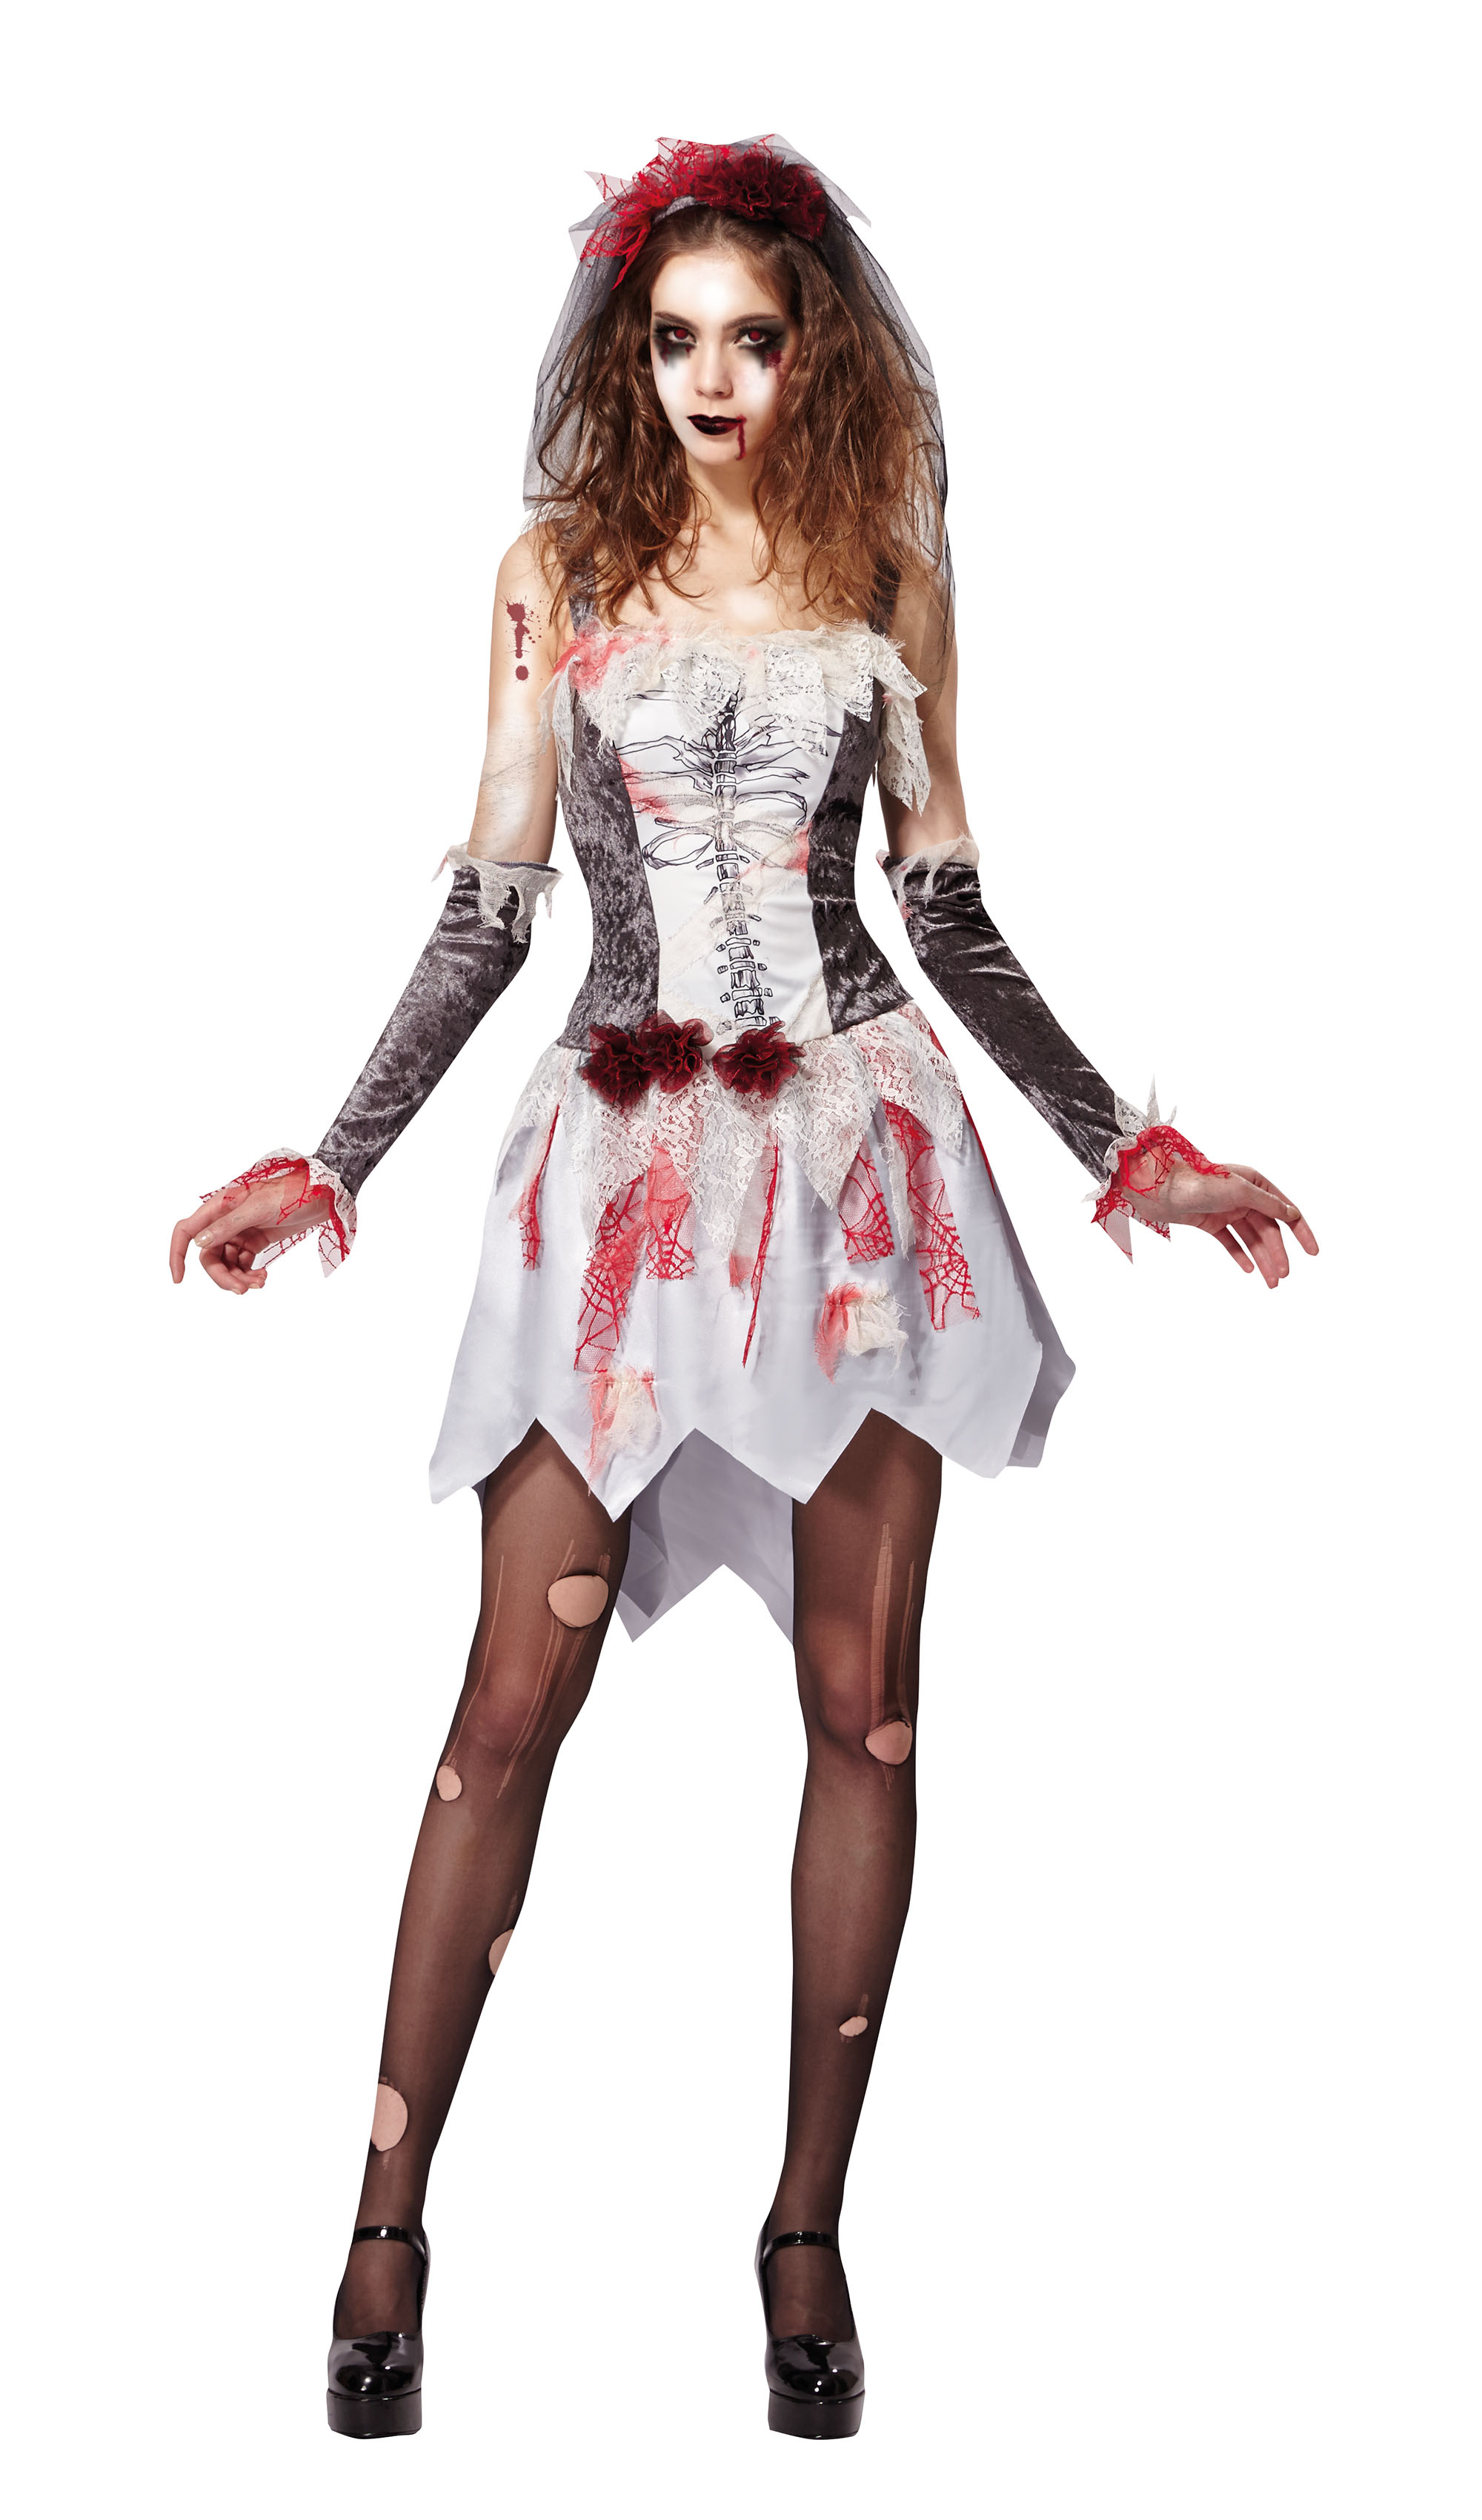 Skeleton Bride Grey/White Fancy Dress Costume Outfit Womens Adult UK 10-12